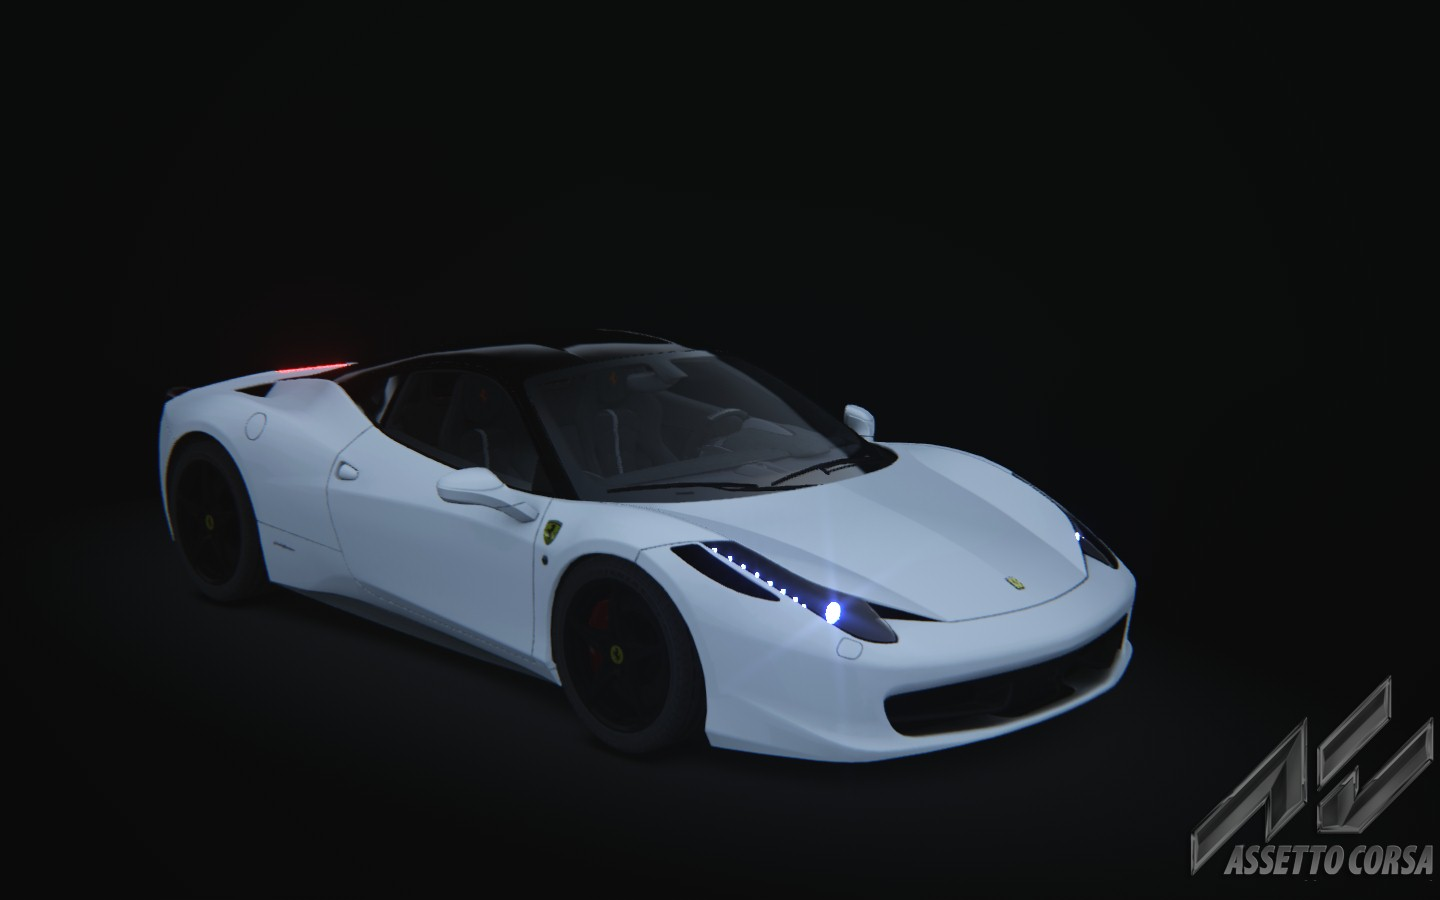 Showroom_ferrari_458_s3_28-1-2015-18-34-39.jpg